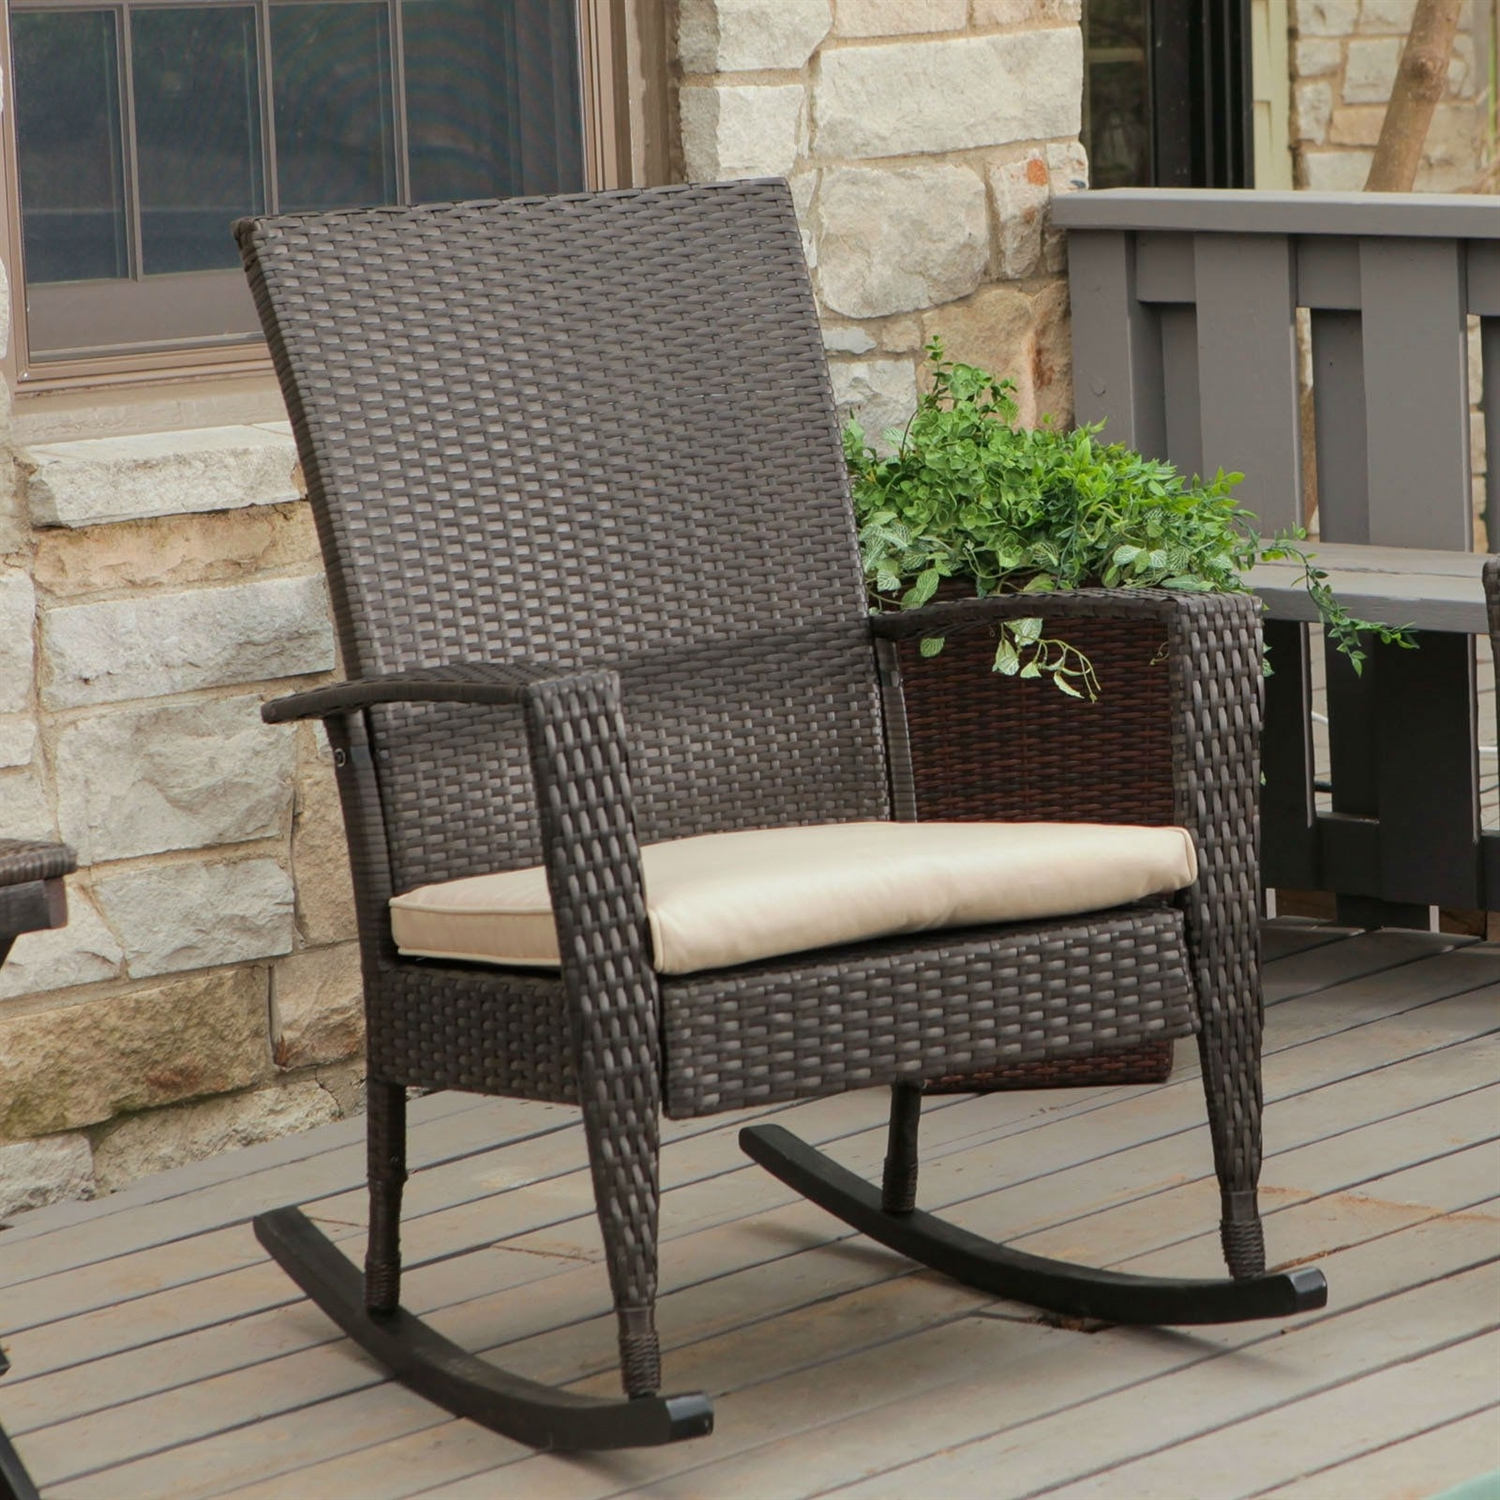 Indoor Wicker Rocking Chairs Within Favorite Indoor/outdoor Patio Porch Dark Brown High Back Wicker Rocking Chair (View 15 of 20)